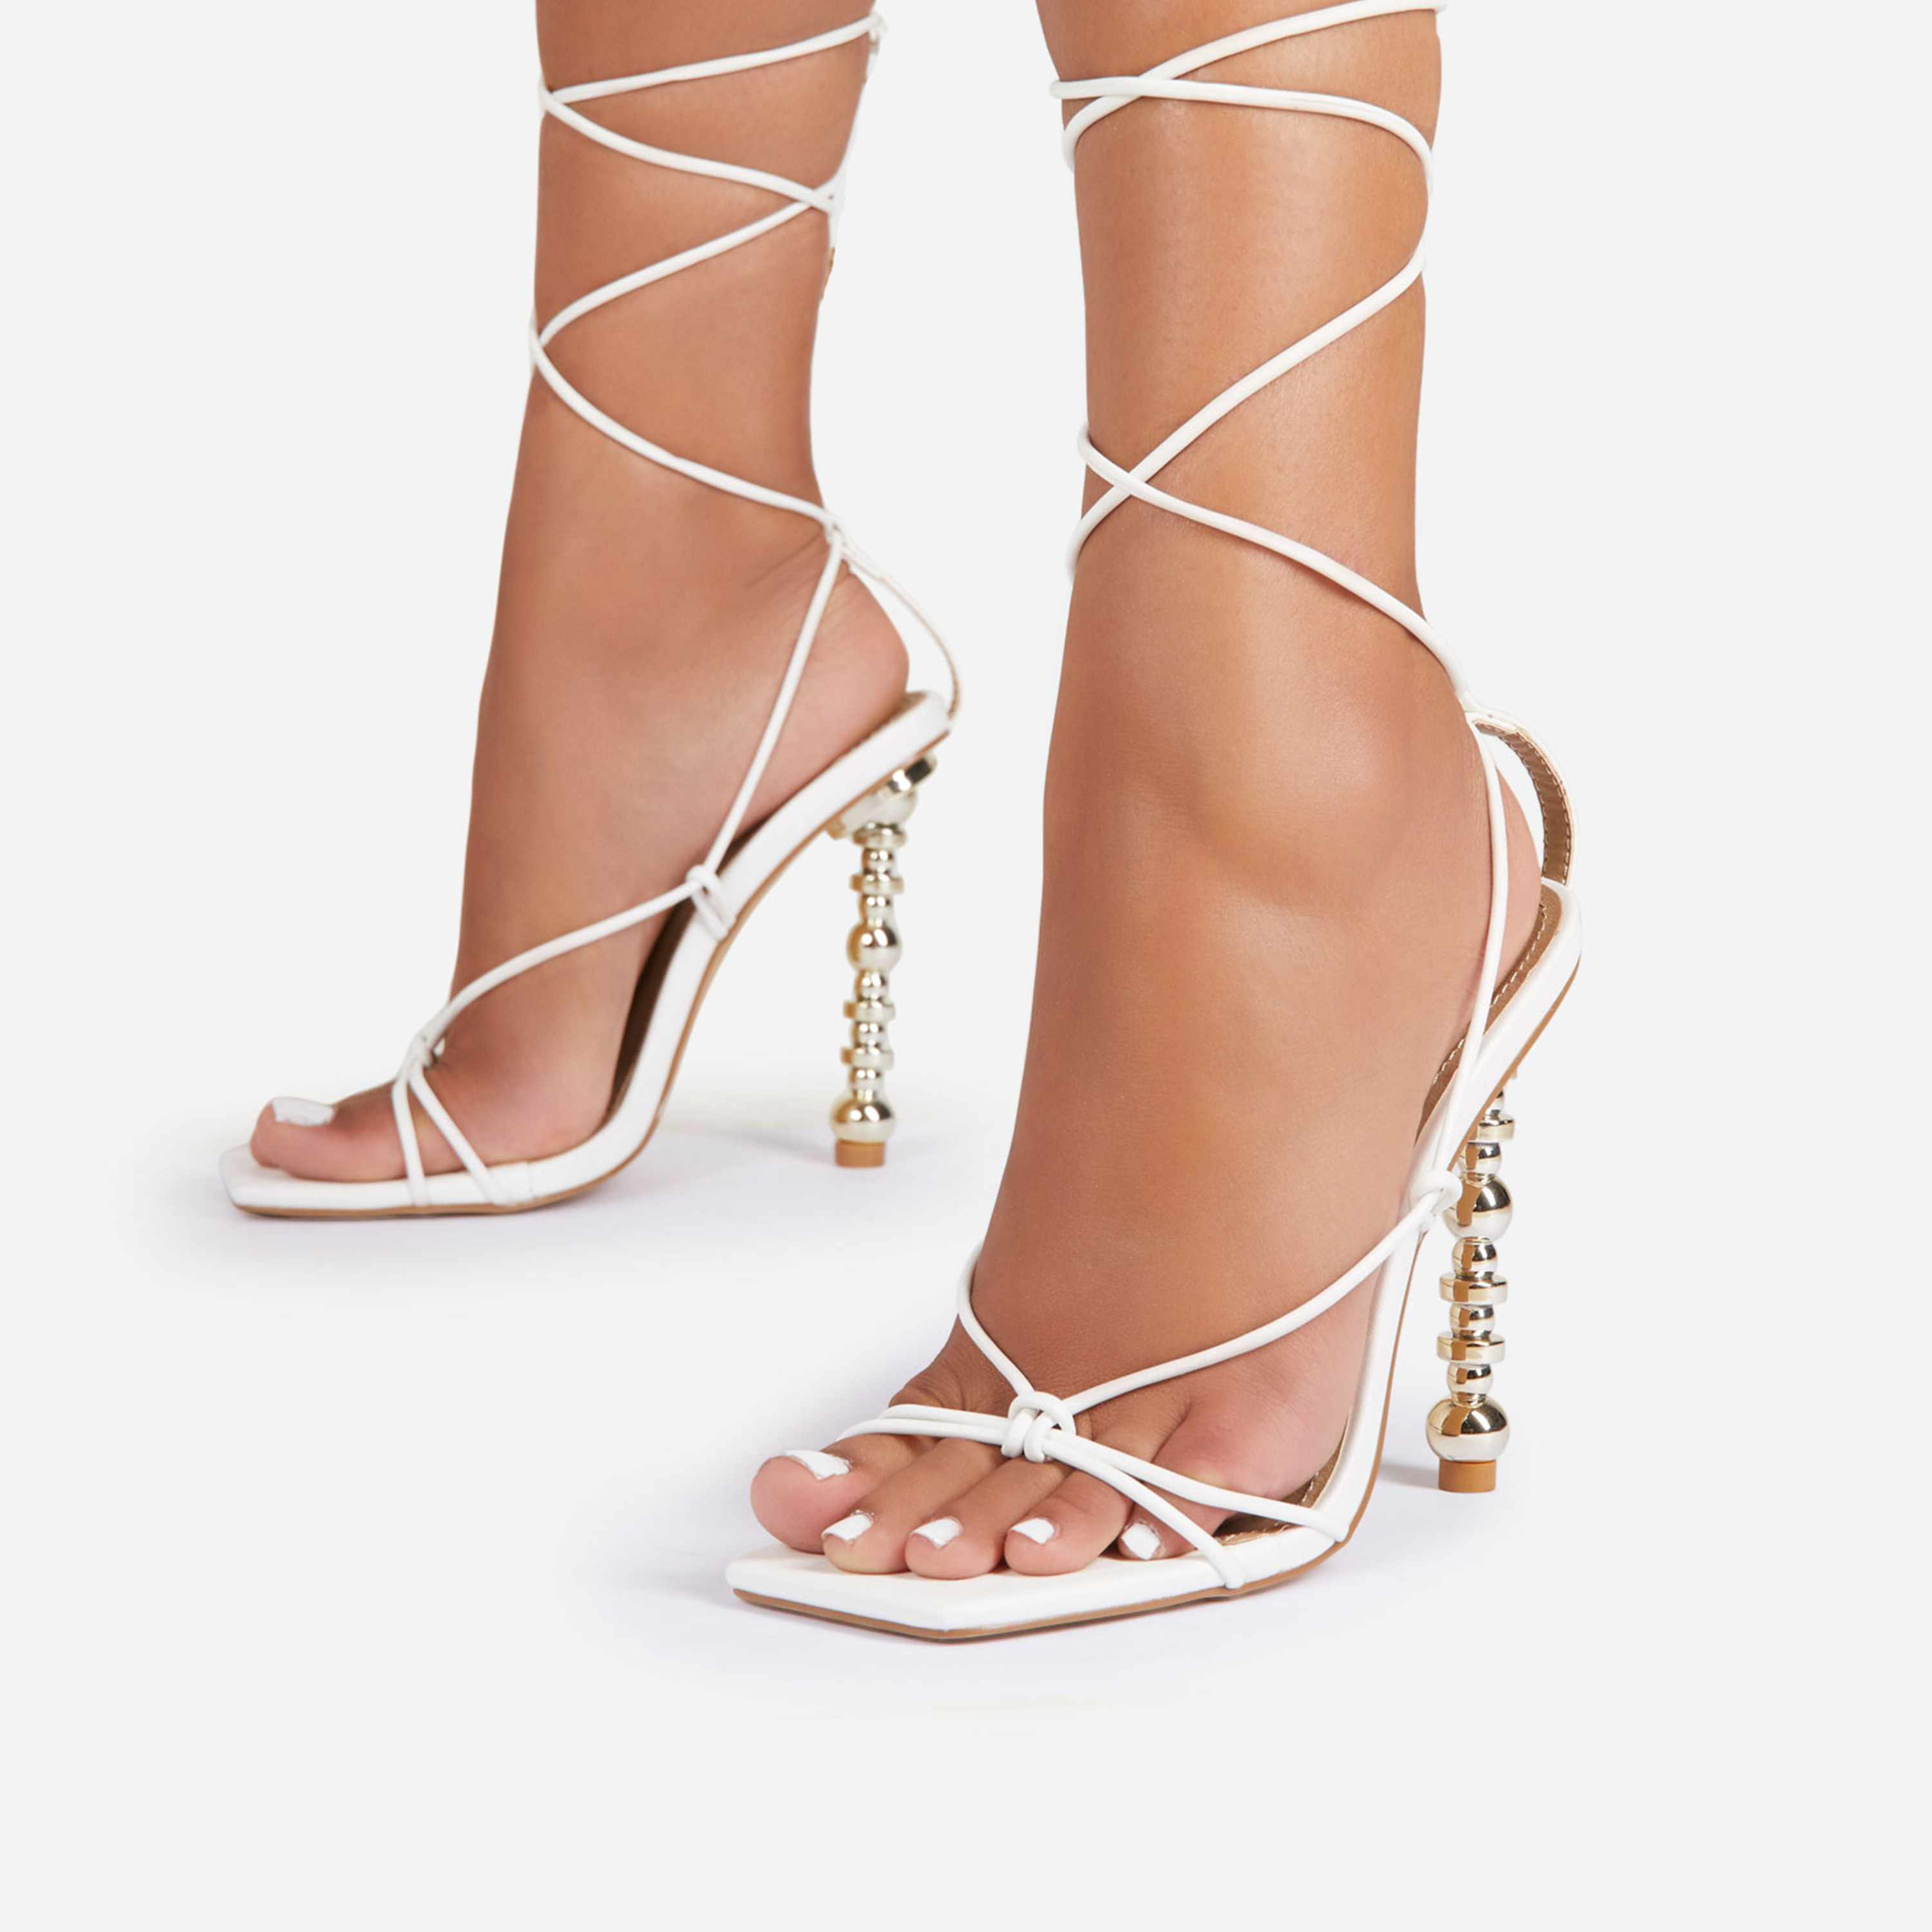 Trophy-Wife Lace Up Square Toe Sculptured Heel In White Faux Leather